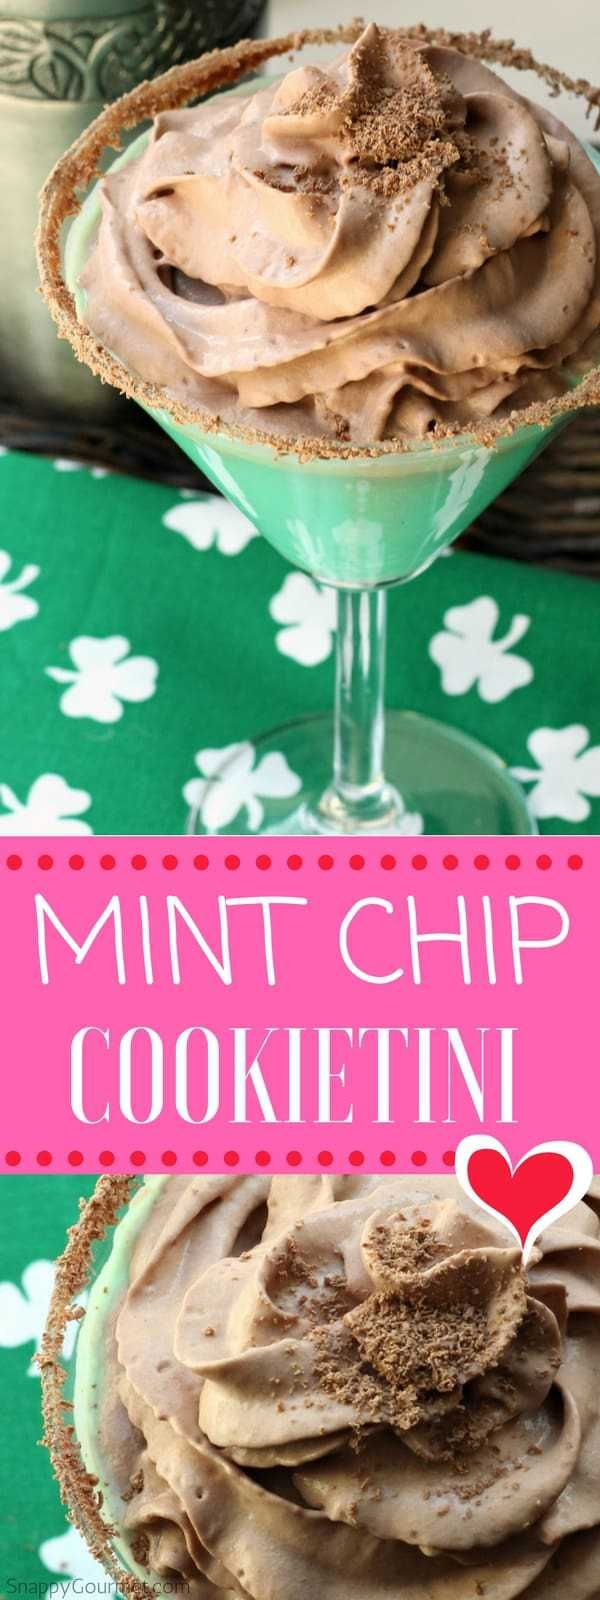 Mint Chip Cookietini Recipe - easy mint cocktail with creme de menthe and cookie dough vodka. Like a Thin Mint shot! #Cocktail #Mint #chocolate #SnappyGourmet #ThinMint #Vodka #CremeDeMenthe #CookieDough #vodka #shot #drink #martini #stpatricksday #green #cocktails